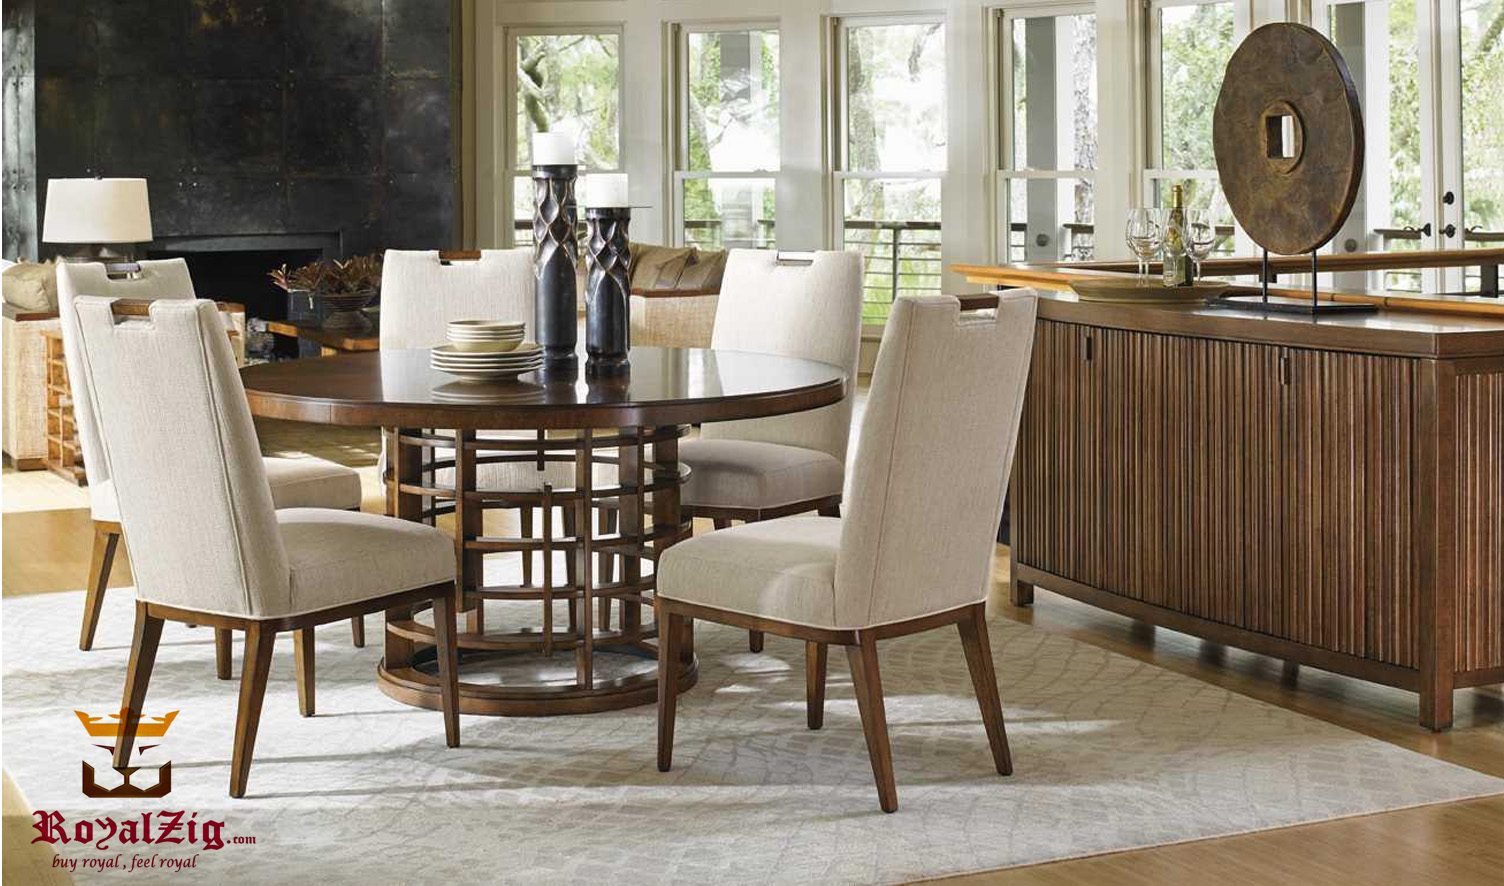 Cobham Modern Luxury Dining Table With Uplholstered Chairs